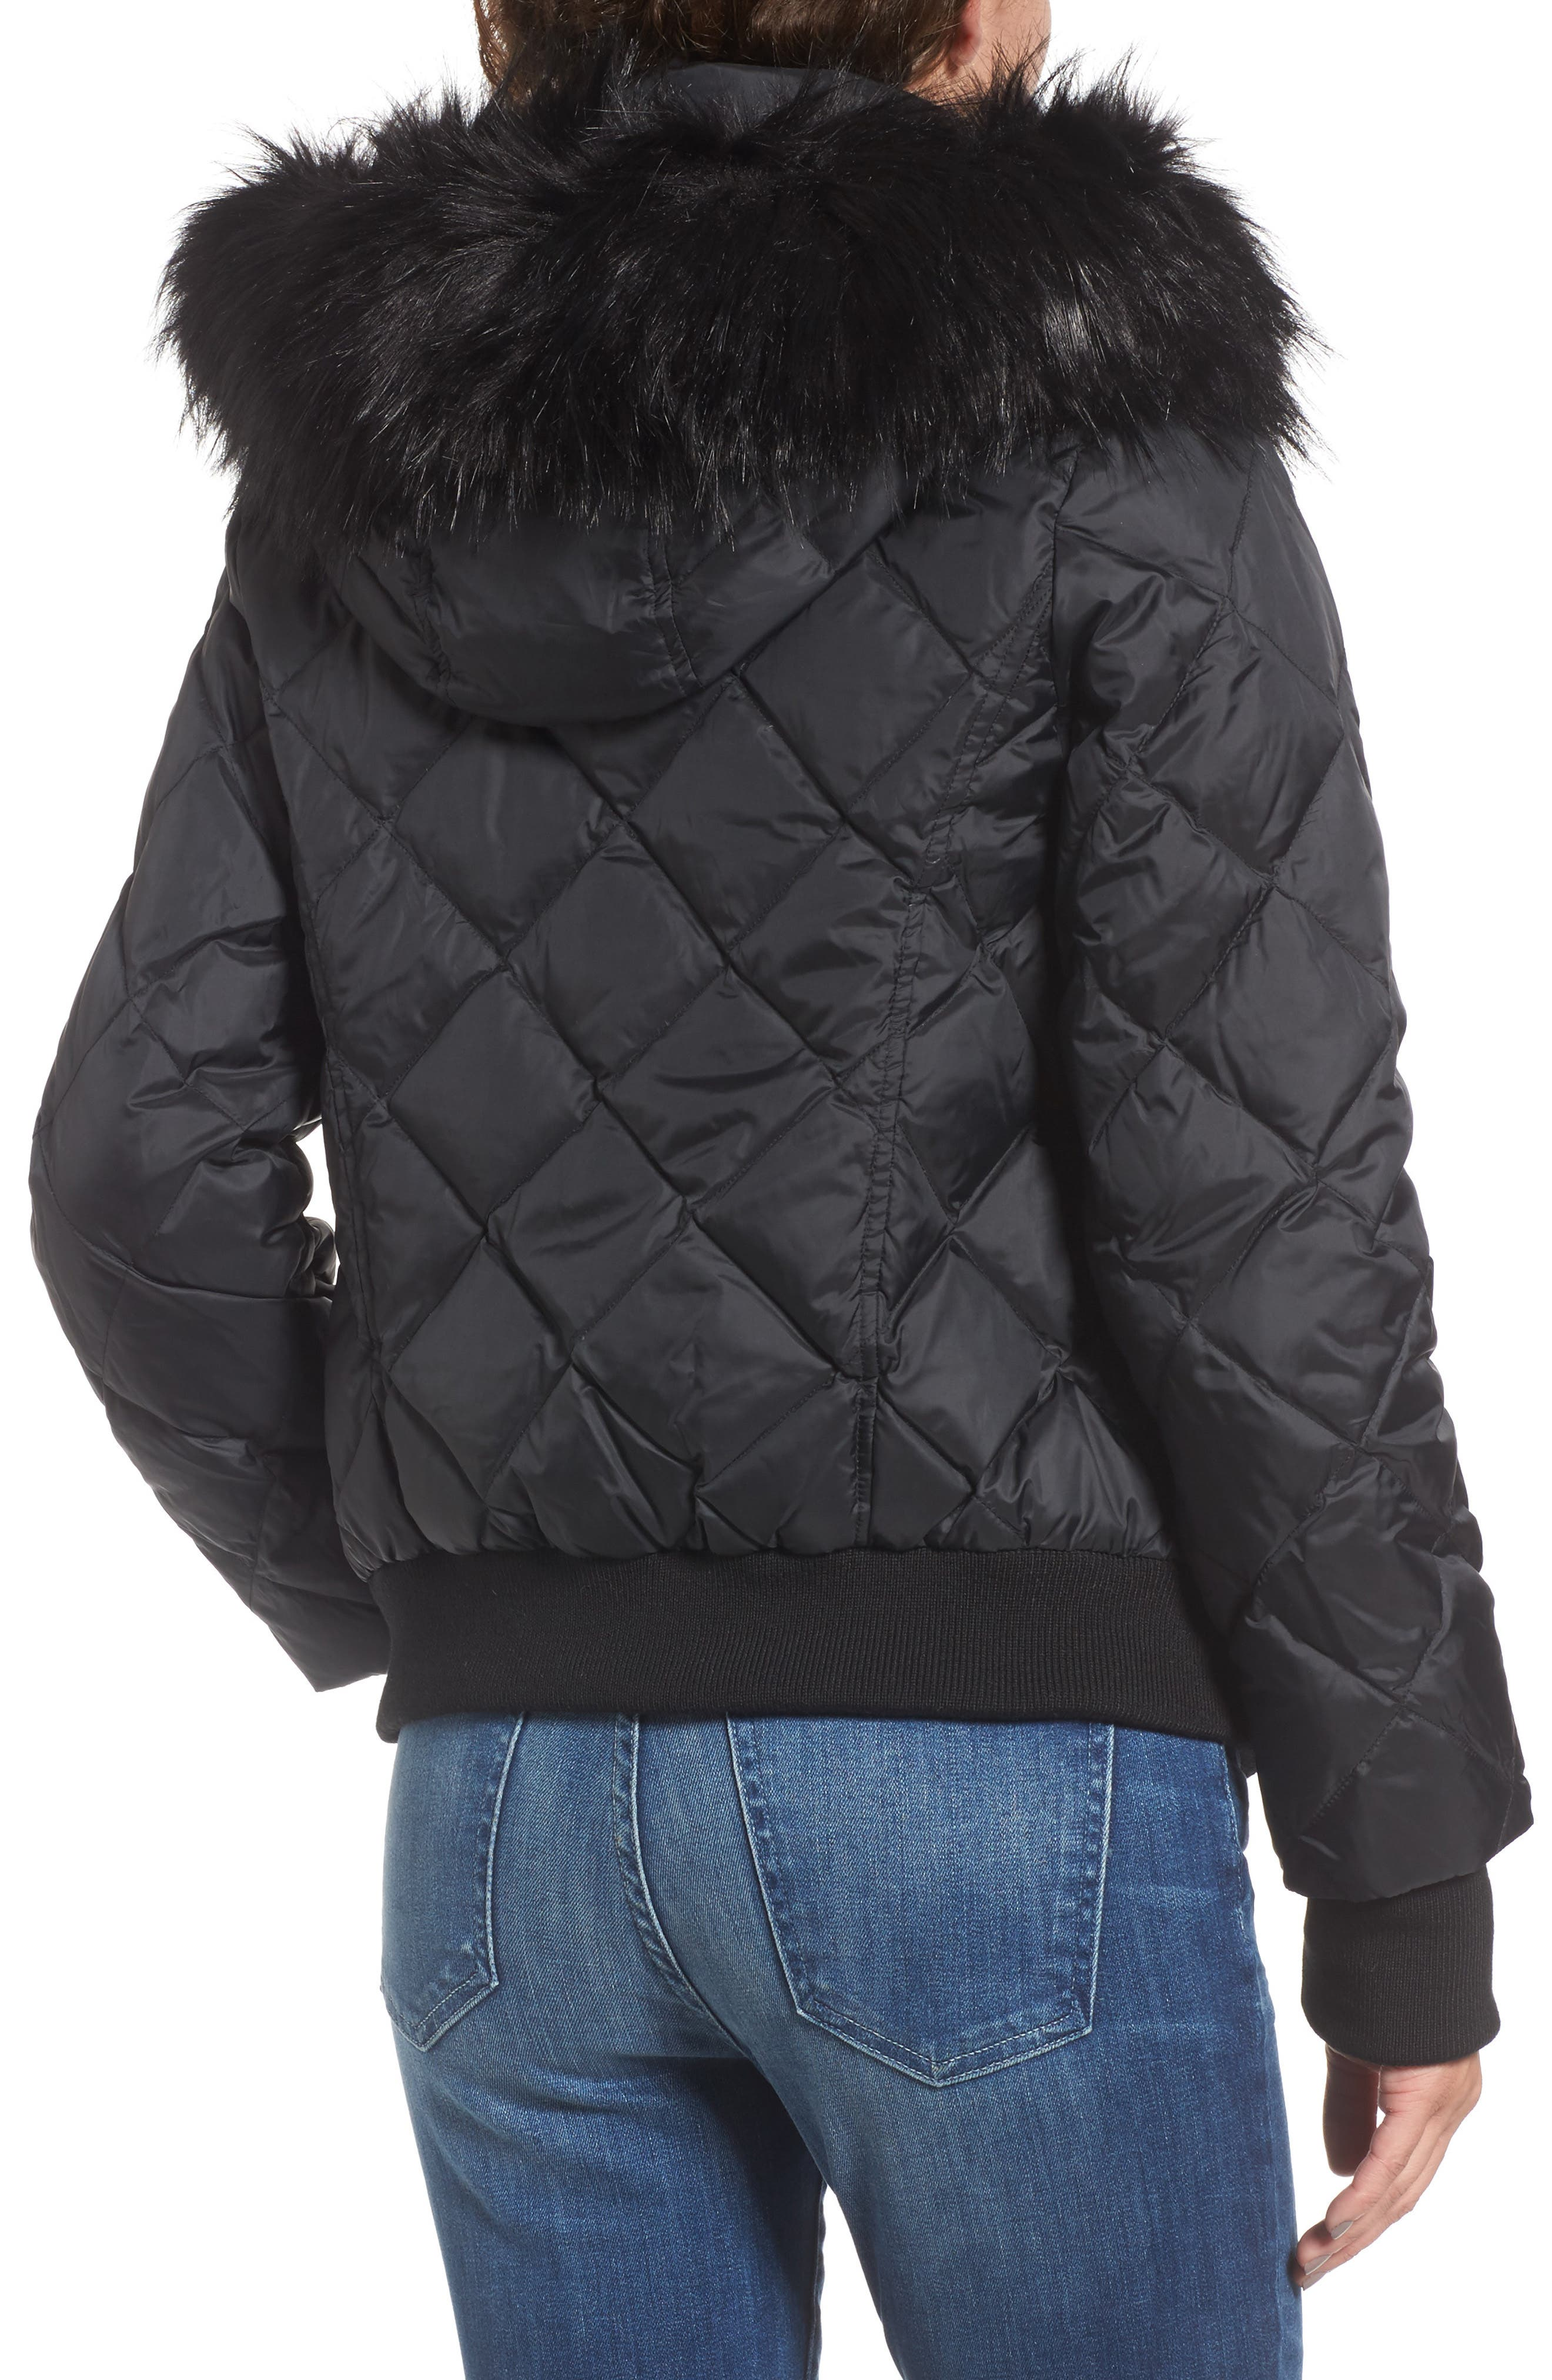 Alternate Image 2  - Juicy Couture Hooded Puffer Jacket with Faux Fur Trim